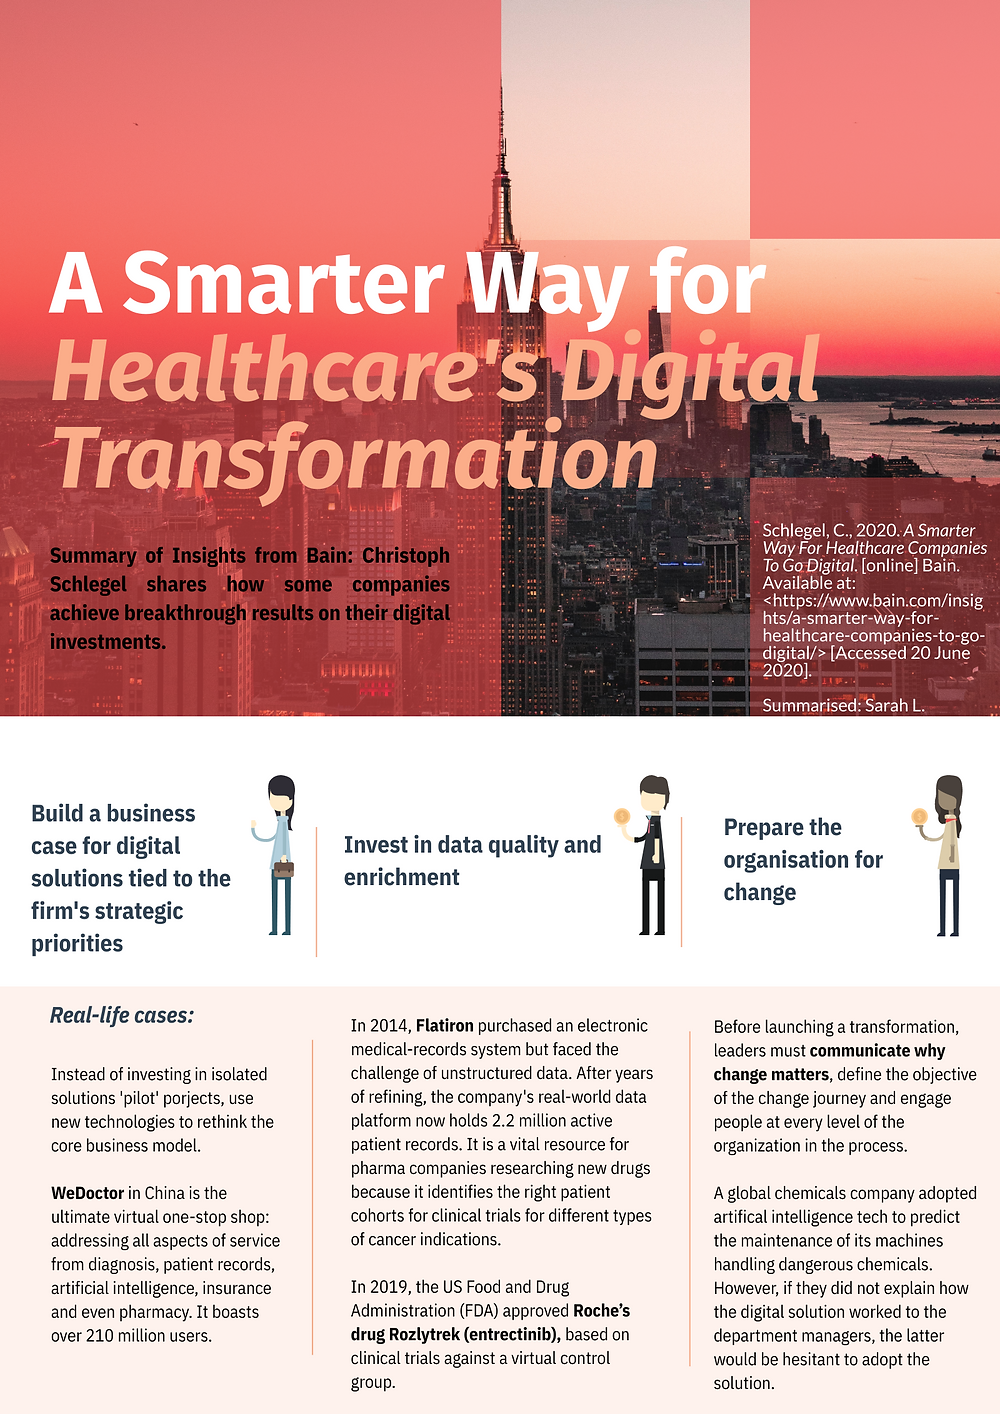 healthcare, digital, transformation, bain, profit, artificial intellgence, robot surgery, chemicals, medical, technology, digital, machine learning, platforms